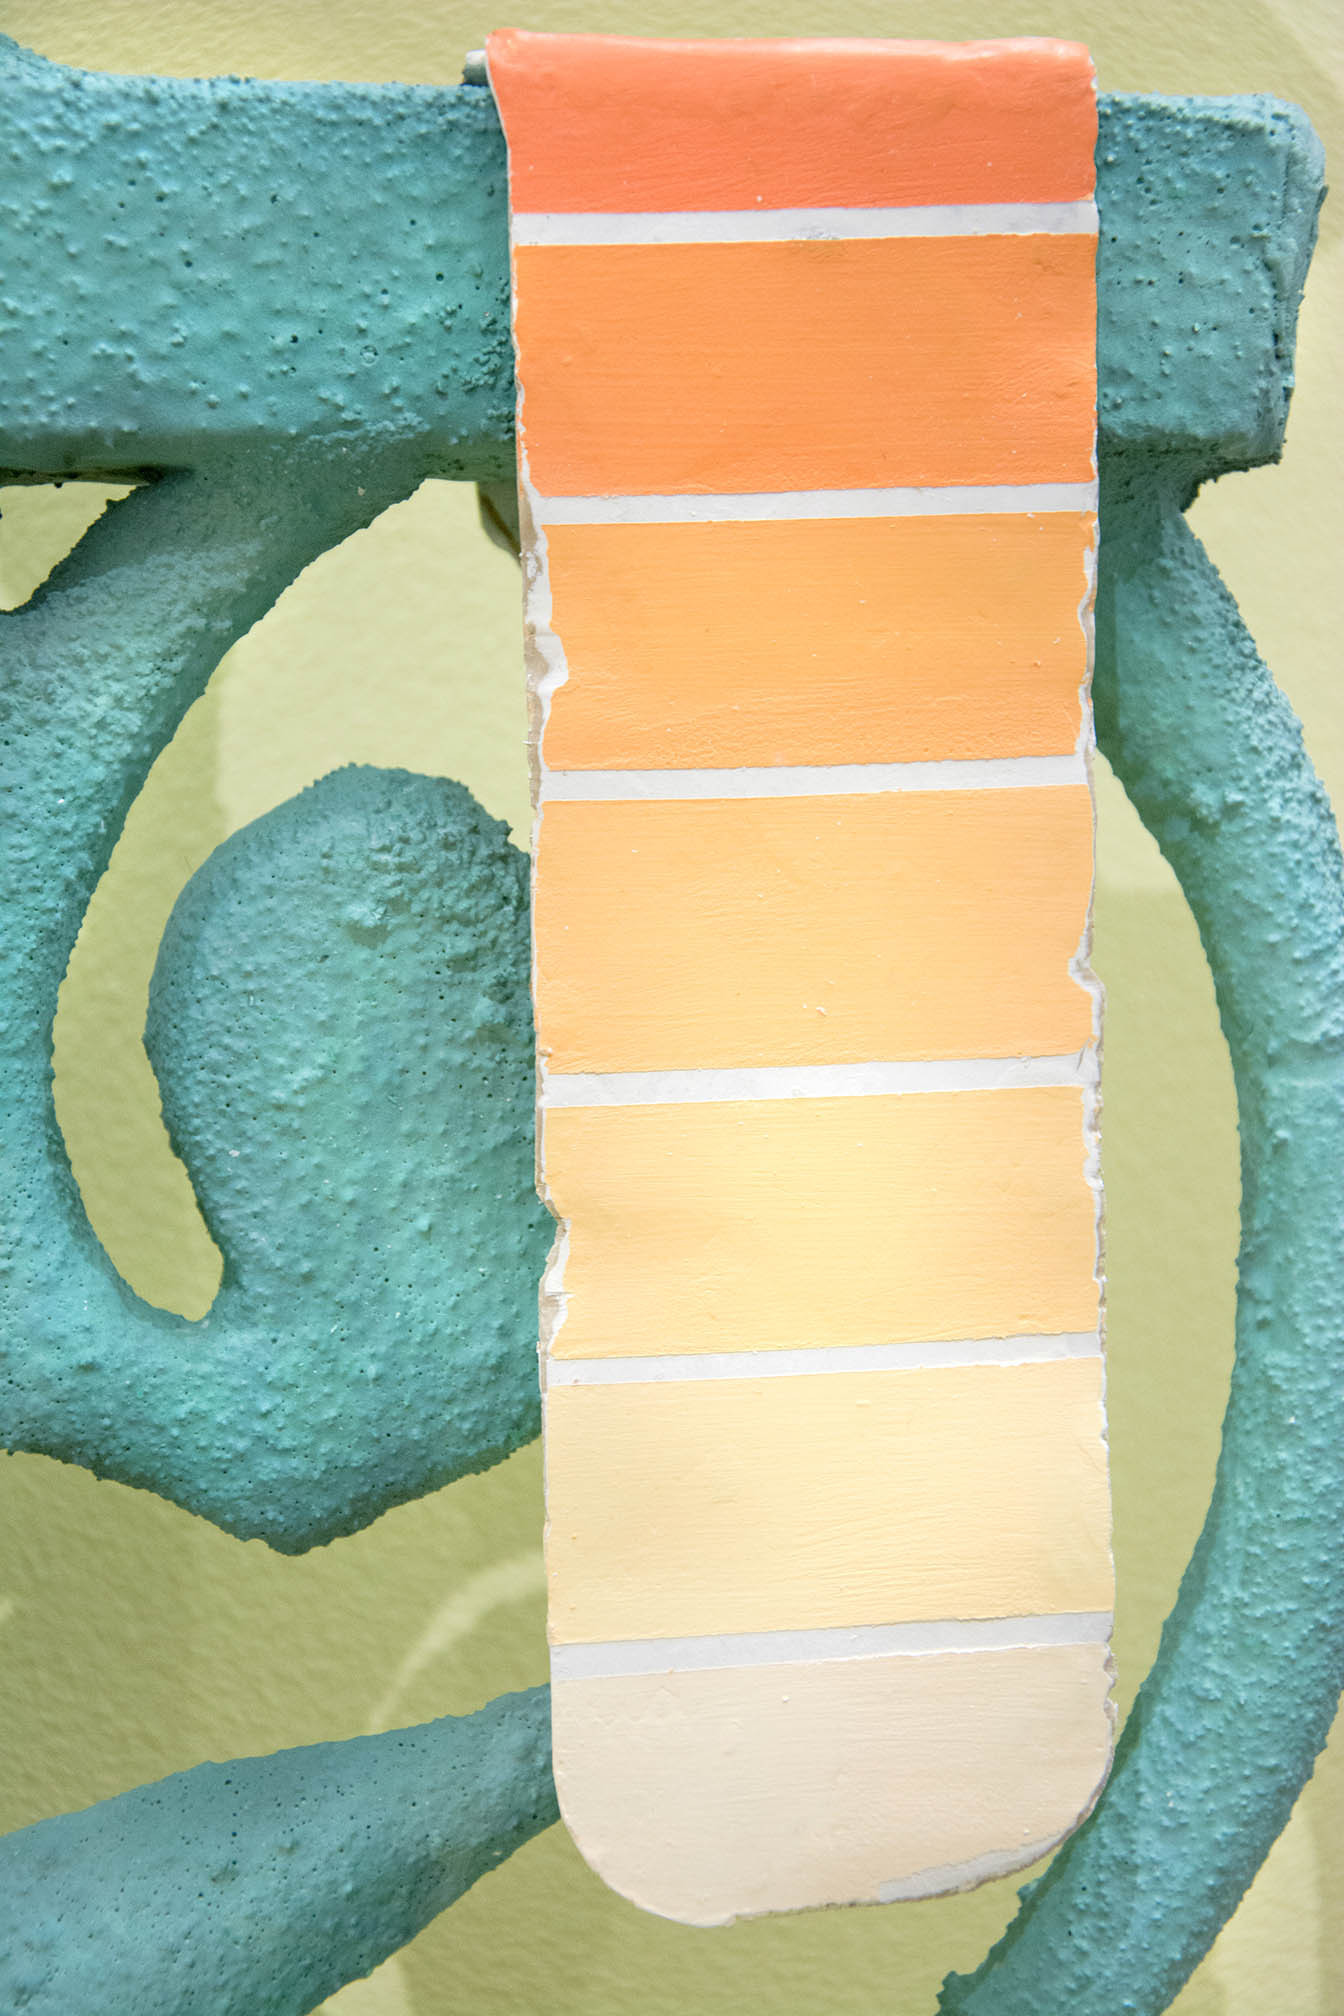 SV Randall, Textured sculpture titled, Rose Colored Lenses of ornate green baroque fence segment on a curved yellow pedestal with sculpted orange paint swatches as part of a contemporary art exhibition.